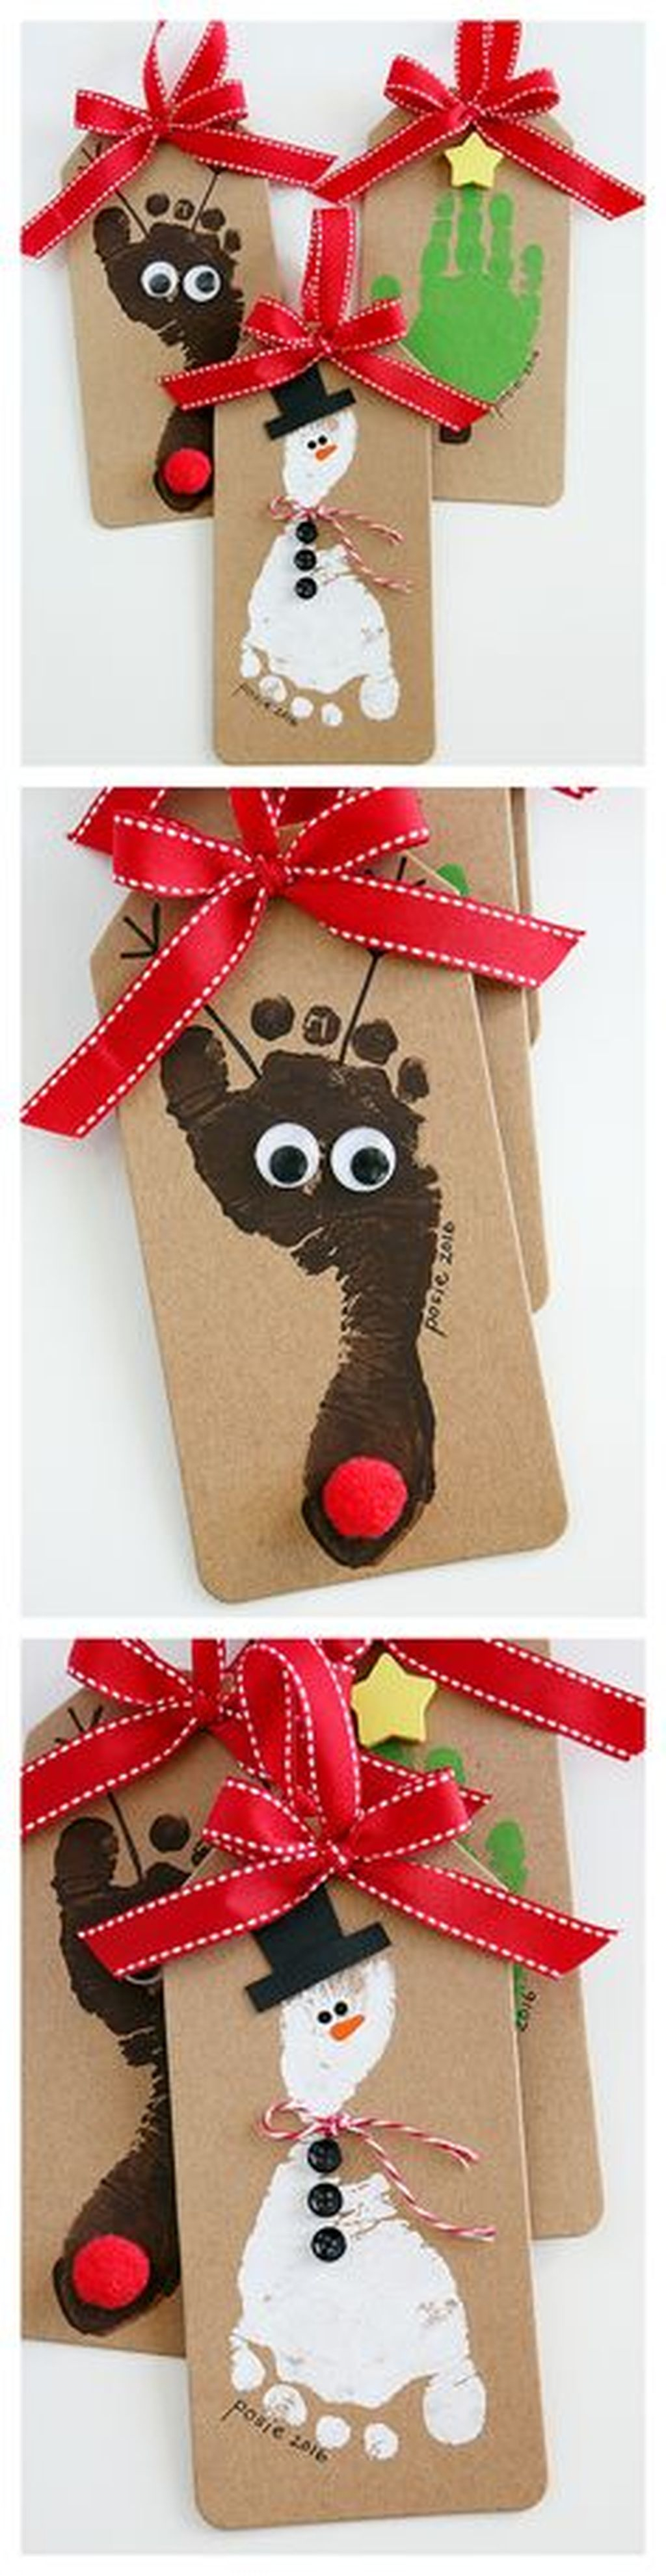 Cute Christmas Decoration Ideas Your Kids Will Totally Love 15